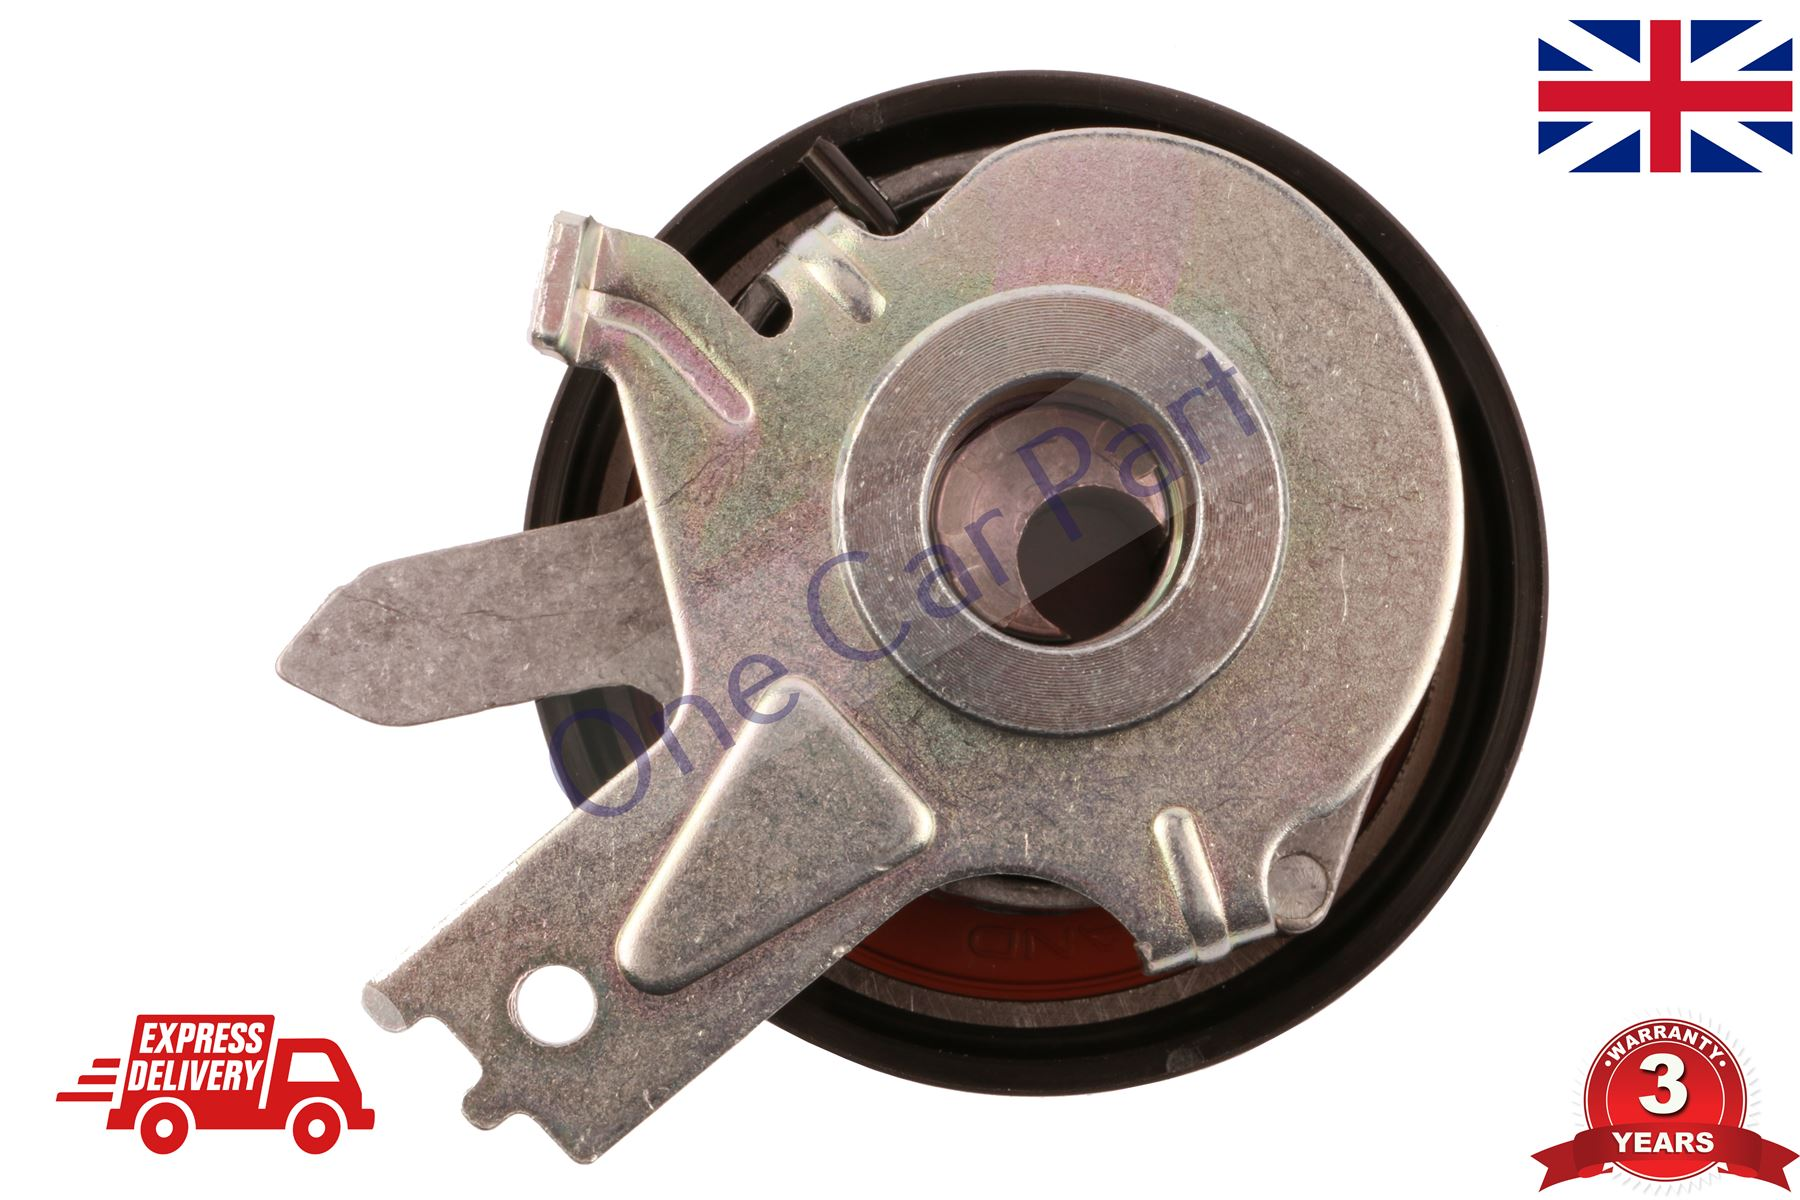 E12 1.5D 2006 on Drive V-Ribbed INA New Aux Belt Tensioner fits NISSAN NOTE E11